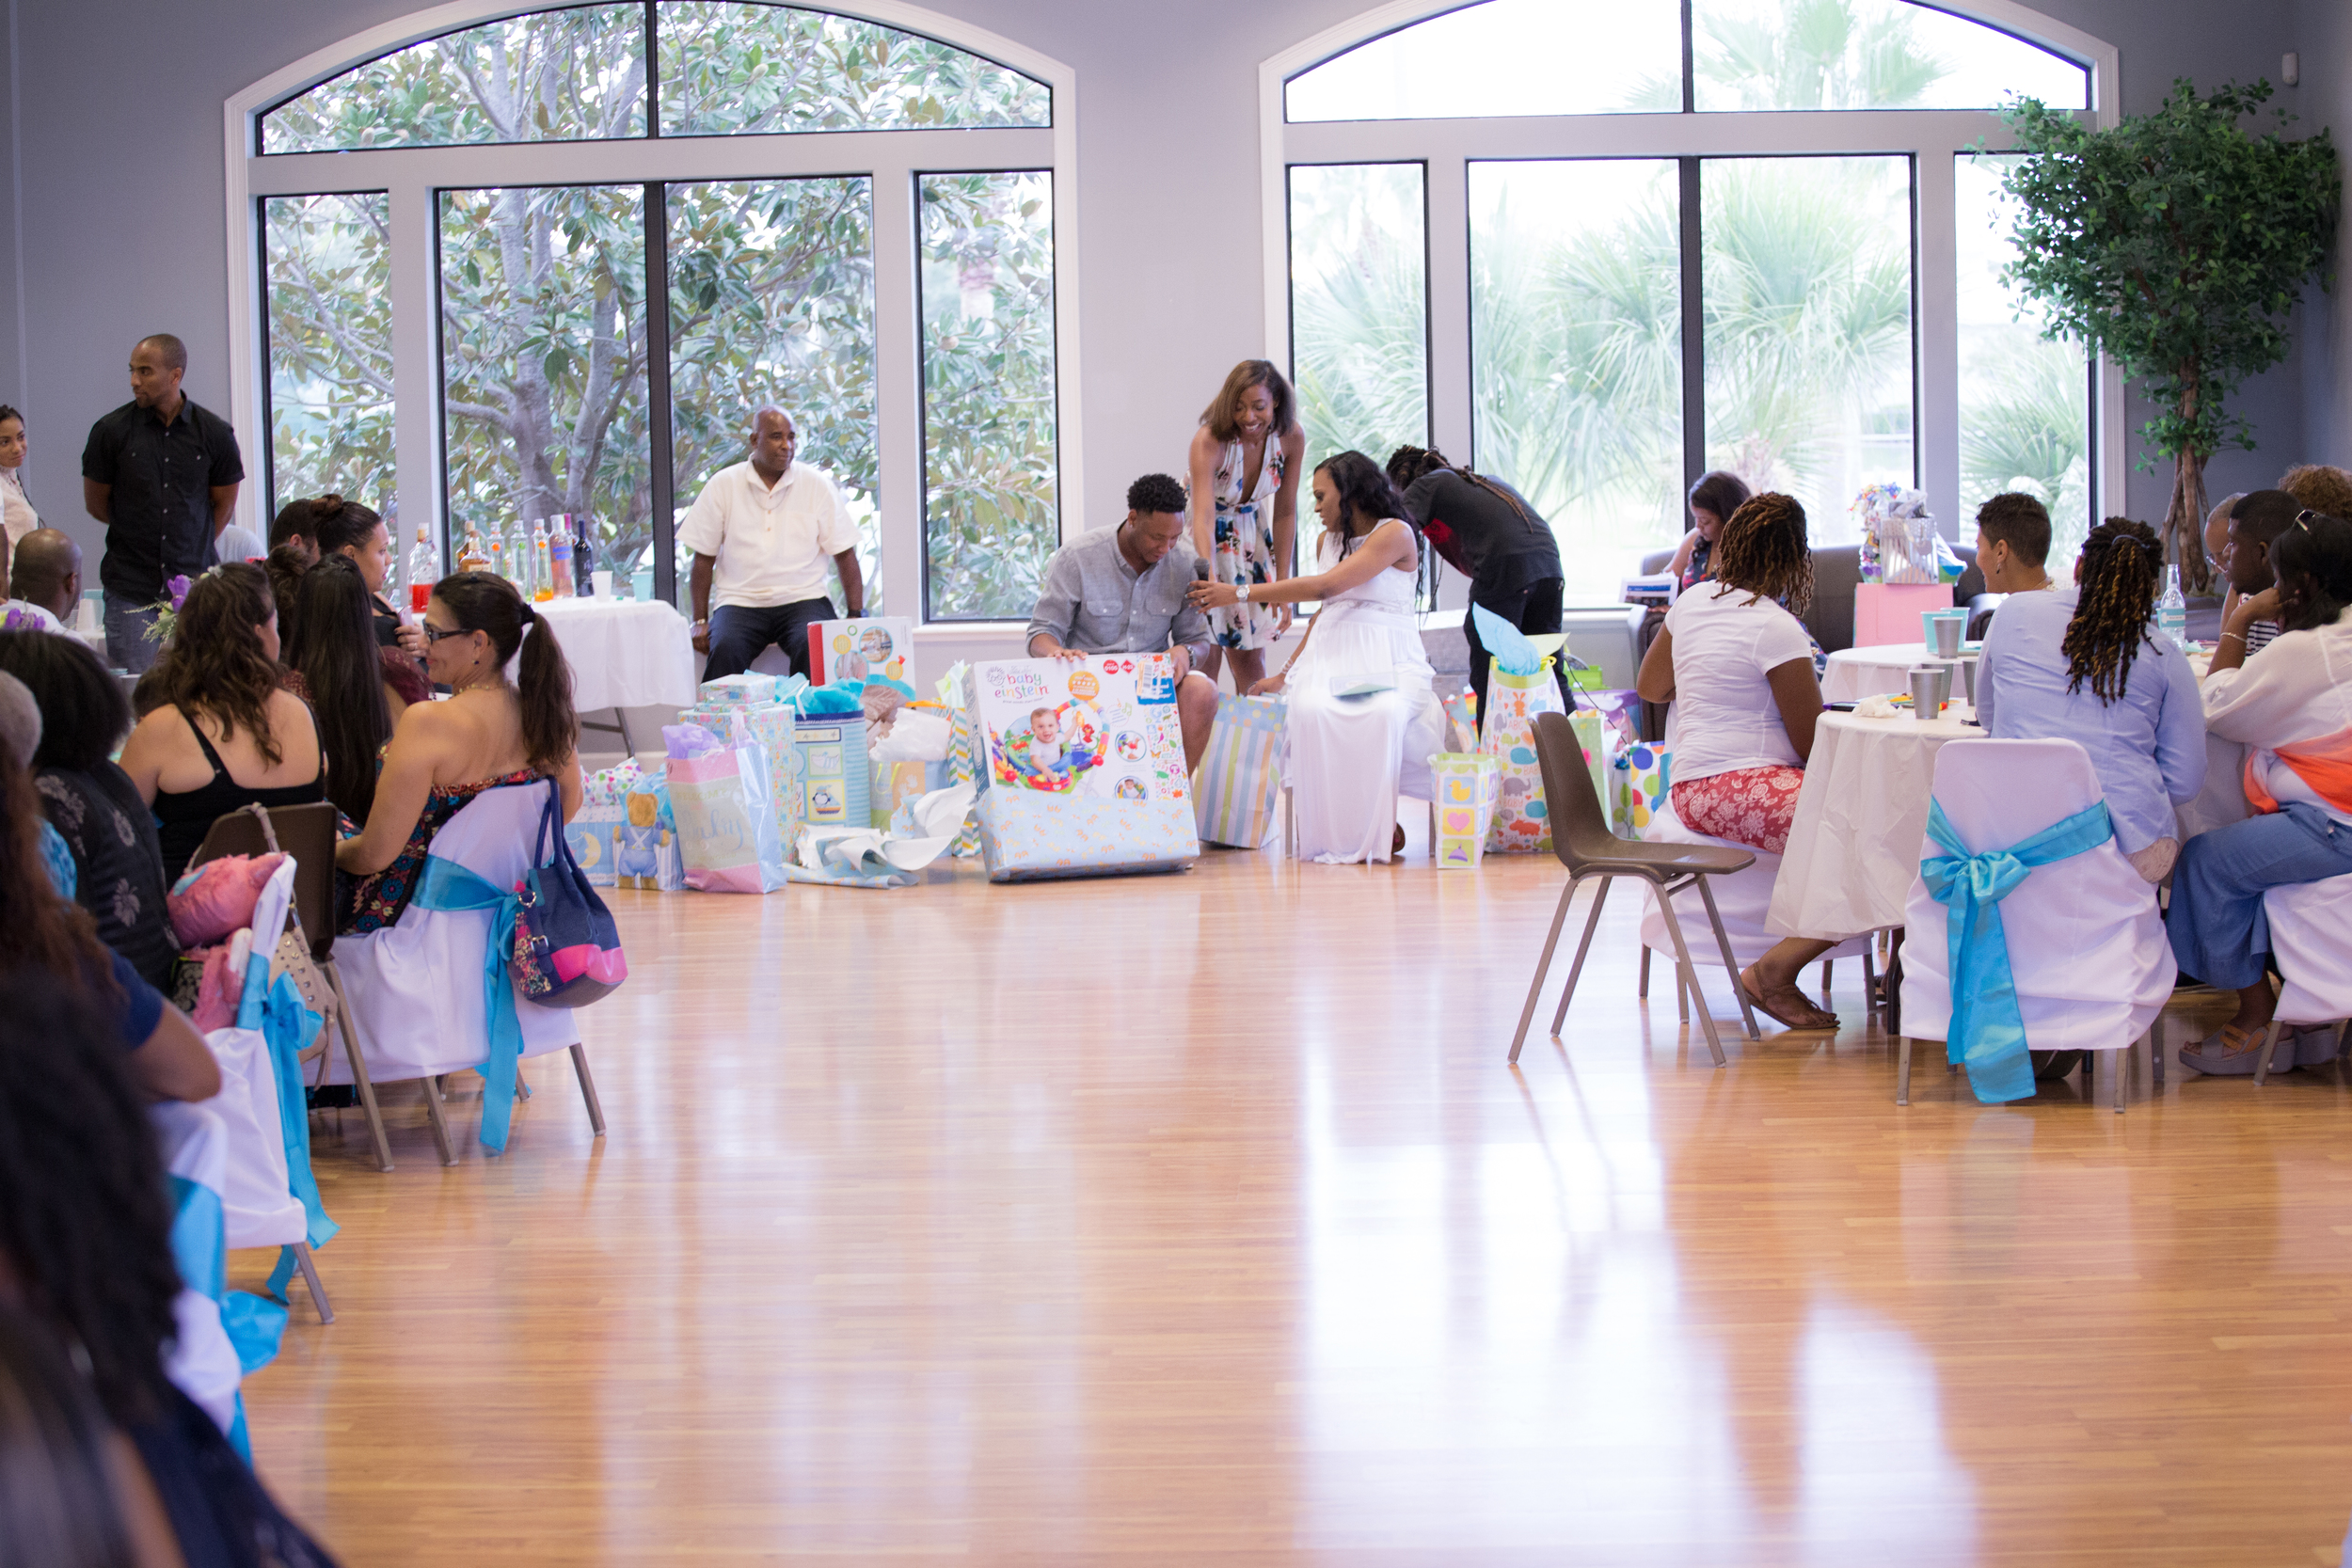 chamber-photography-moments-chamber-web-baby-shower.jpg